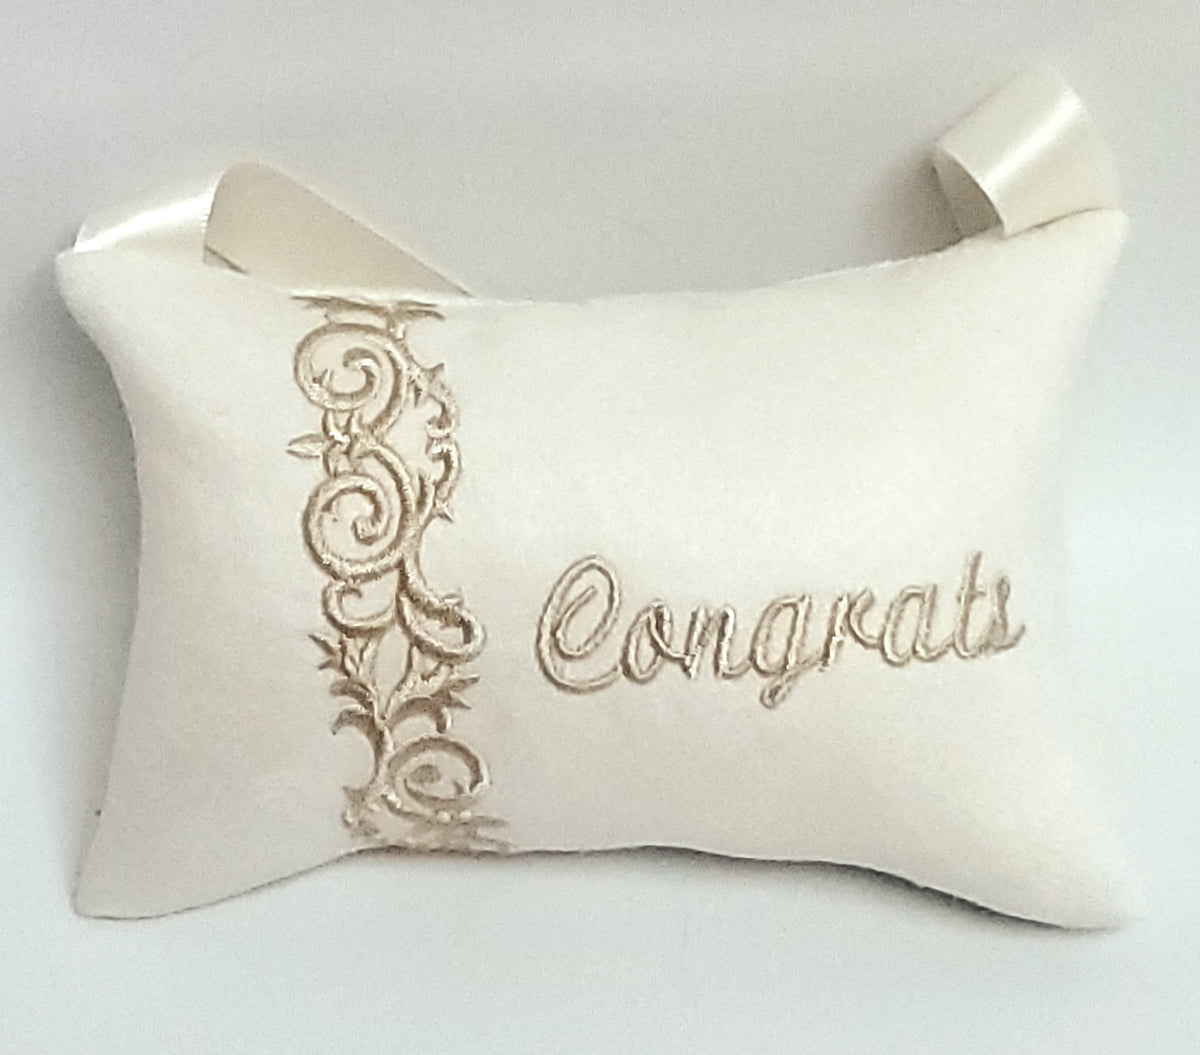 Congrats, Pillow